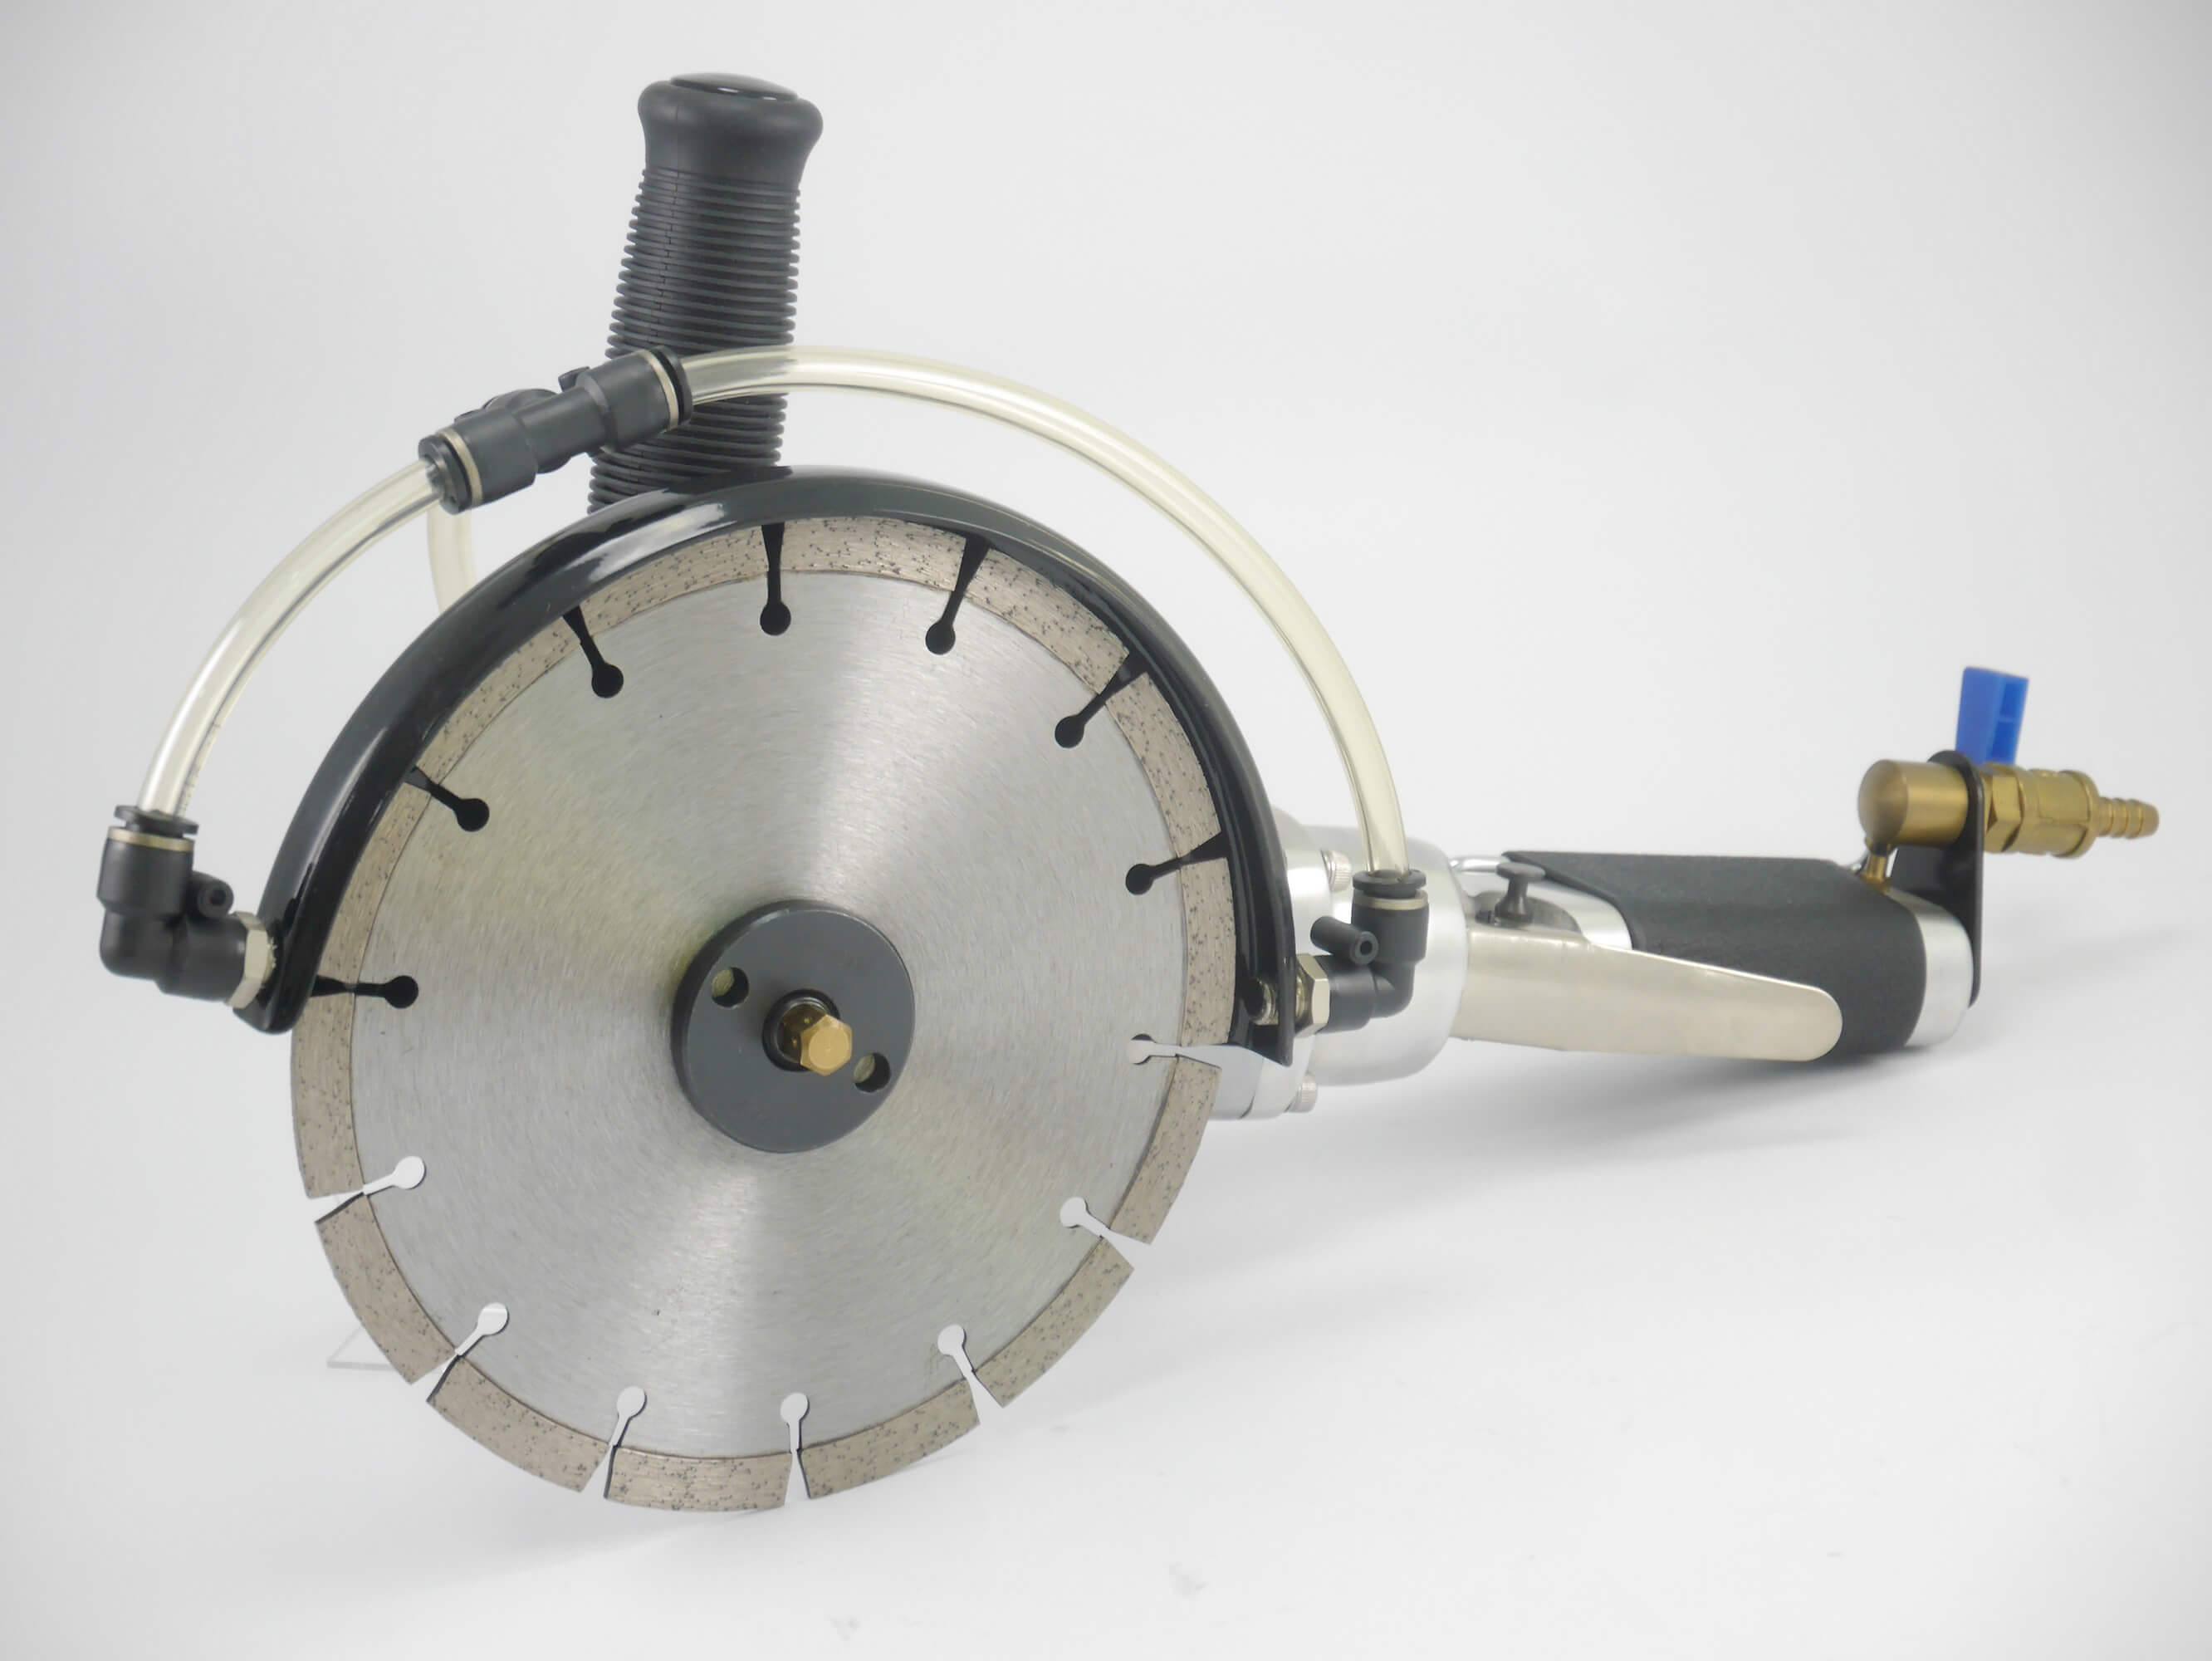 Wet Air Saw for Stone (6500rpm, Left Handle) Supply  Over 44 Years